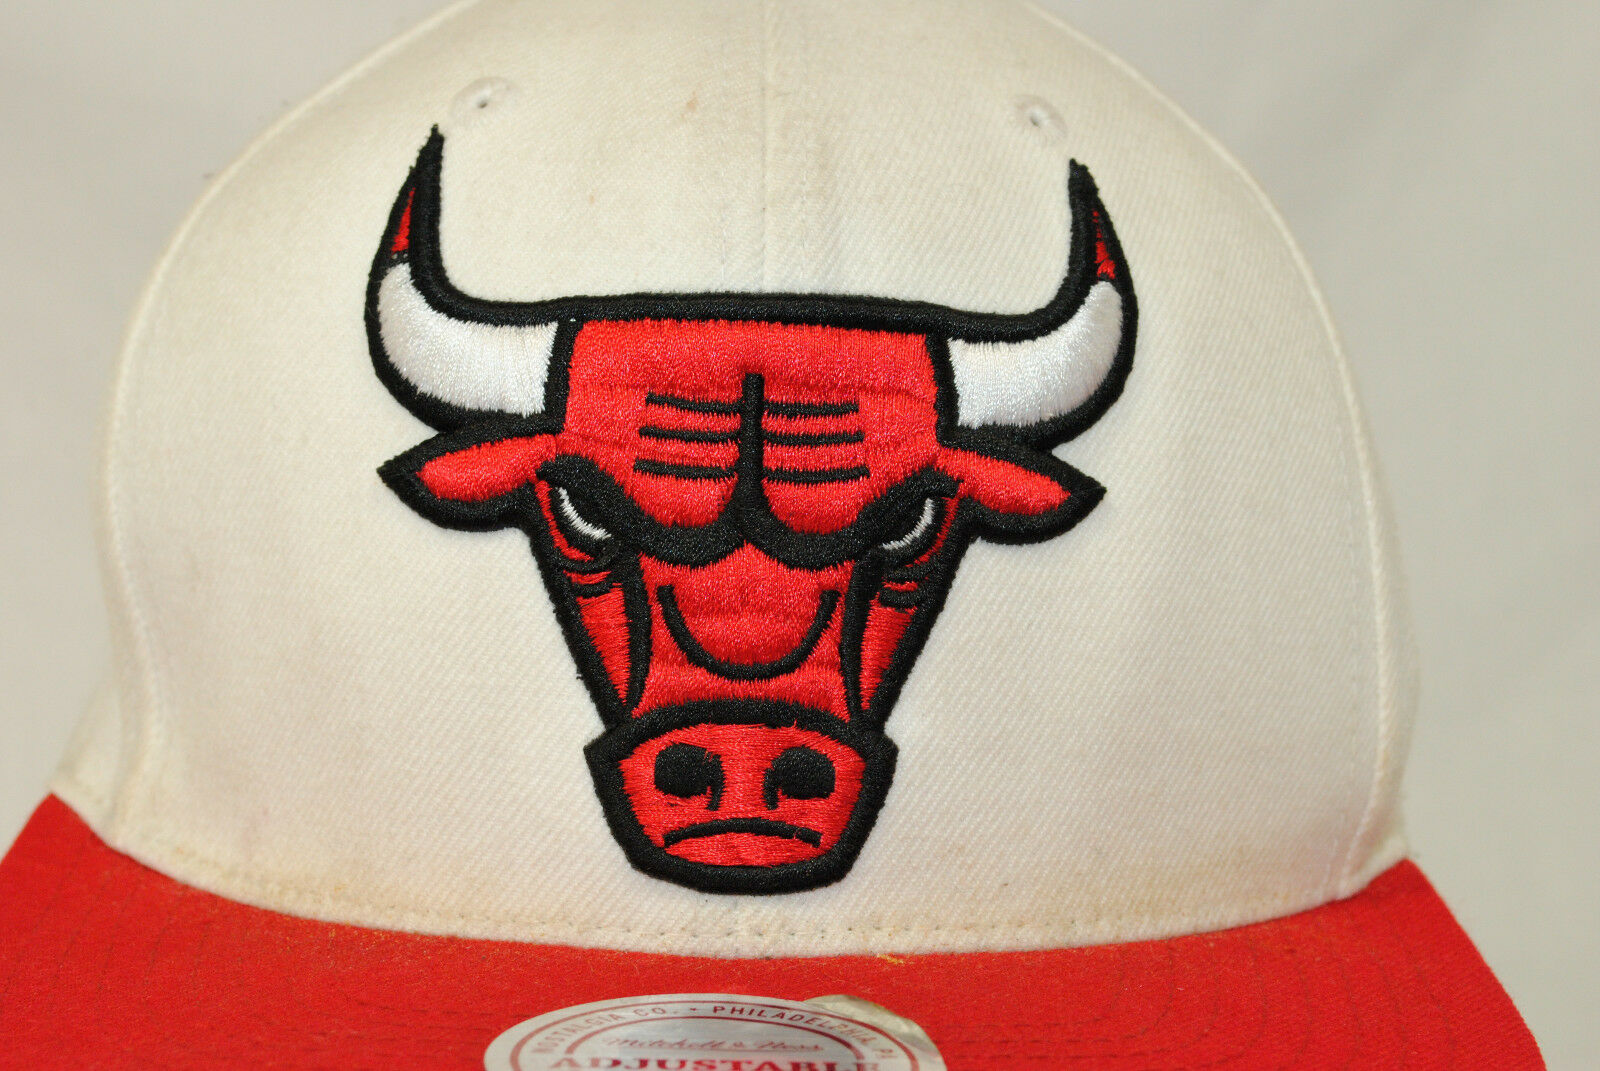 the best attitude 5e912 19e8d Mitchell   Ness Chicago Bulls Snapback Baseball Cap Hat Stained Well Worn  NBA for sale online   eBay